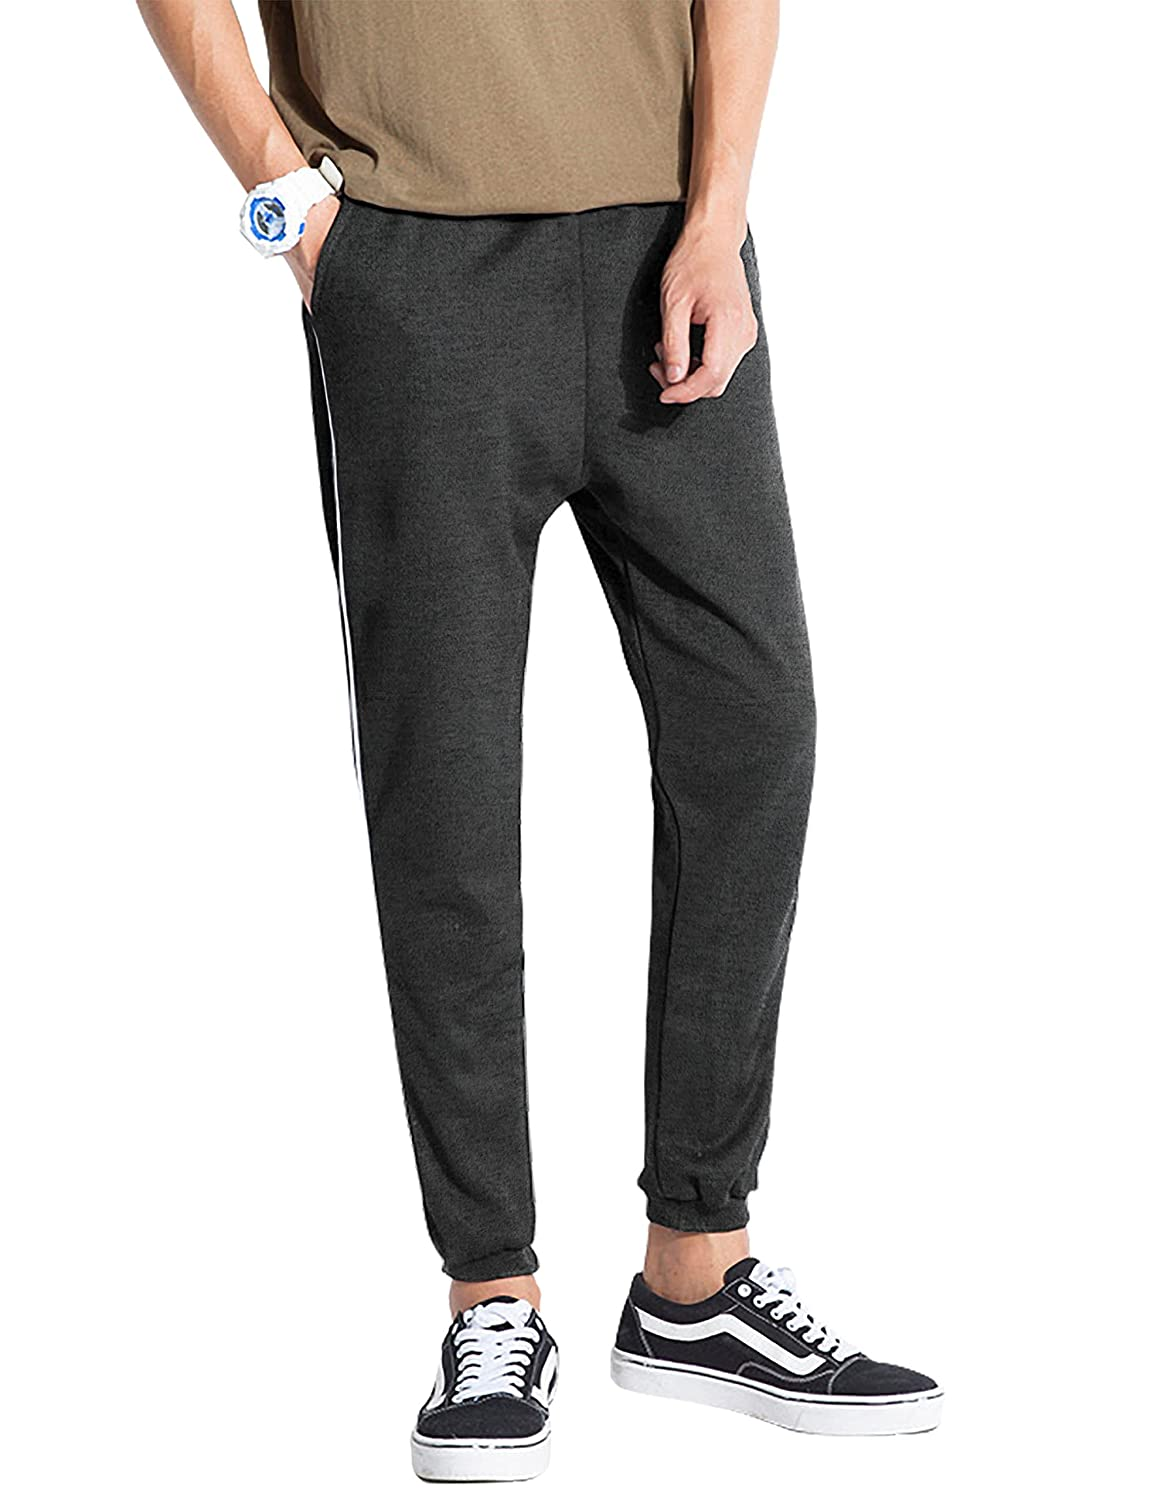 f6f3da25d4d Top 10 wholesale Narrow Bottom Pants For Men - Chinabrands.com